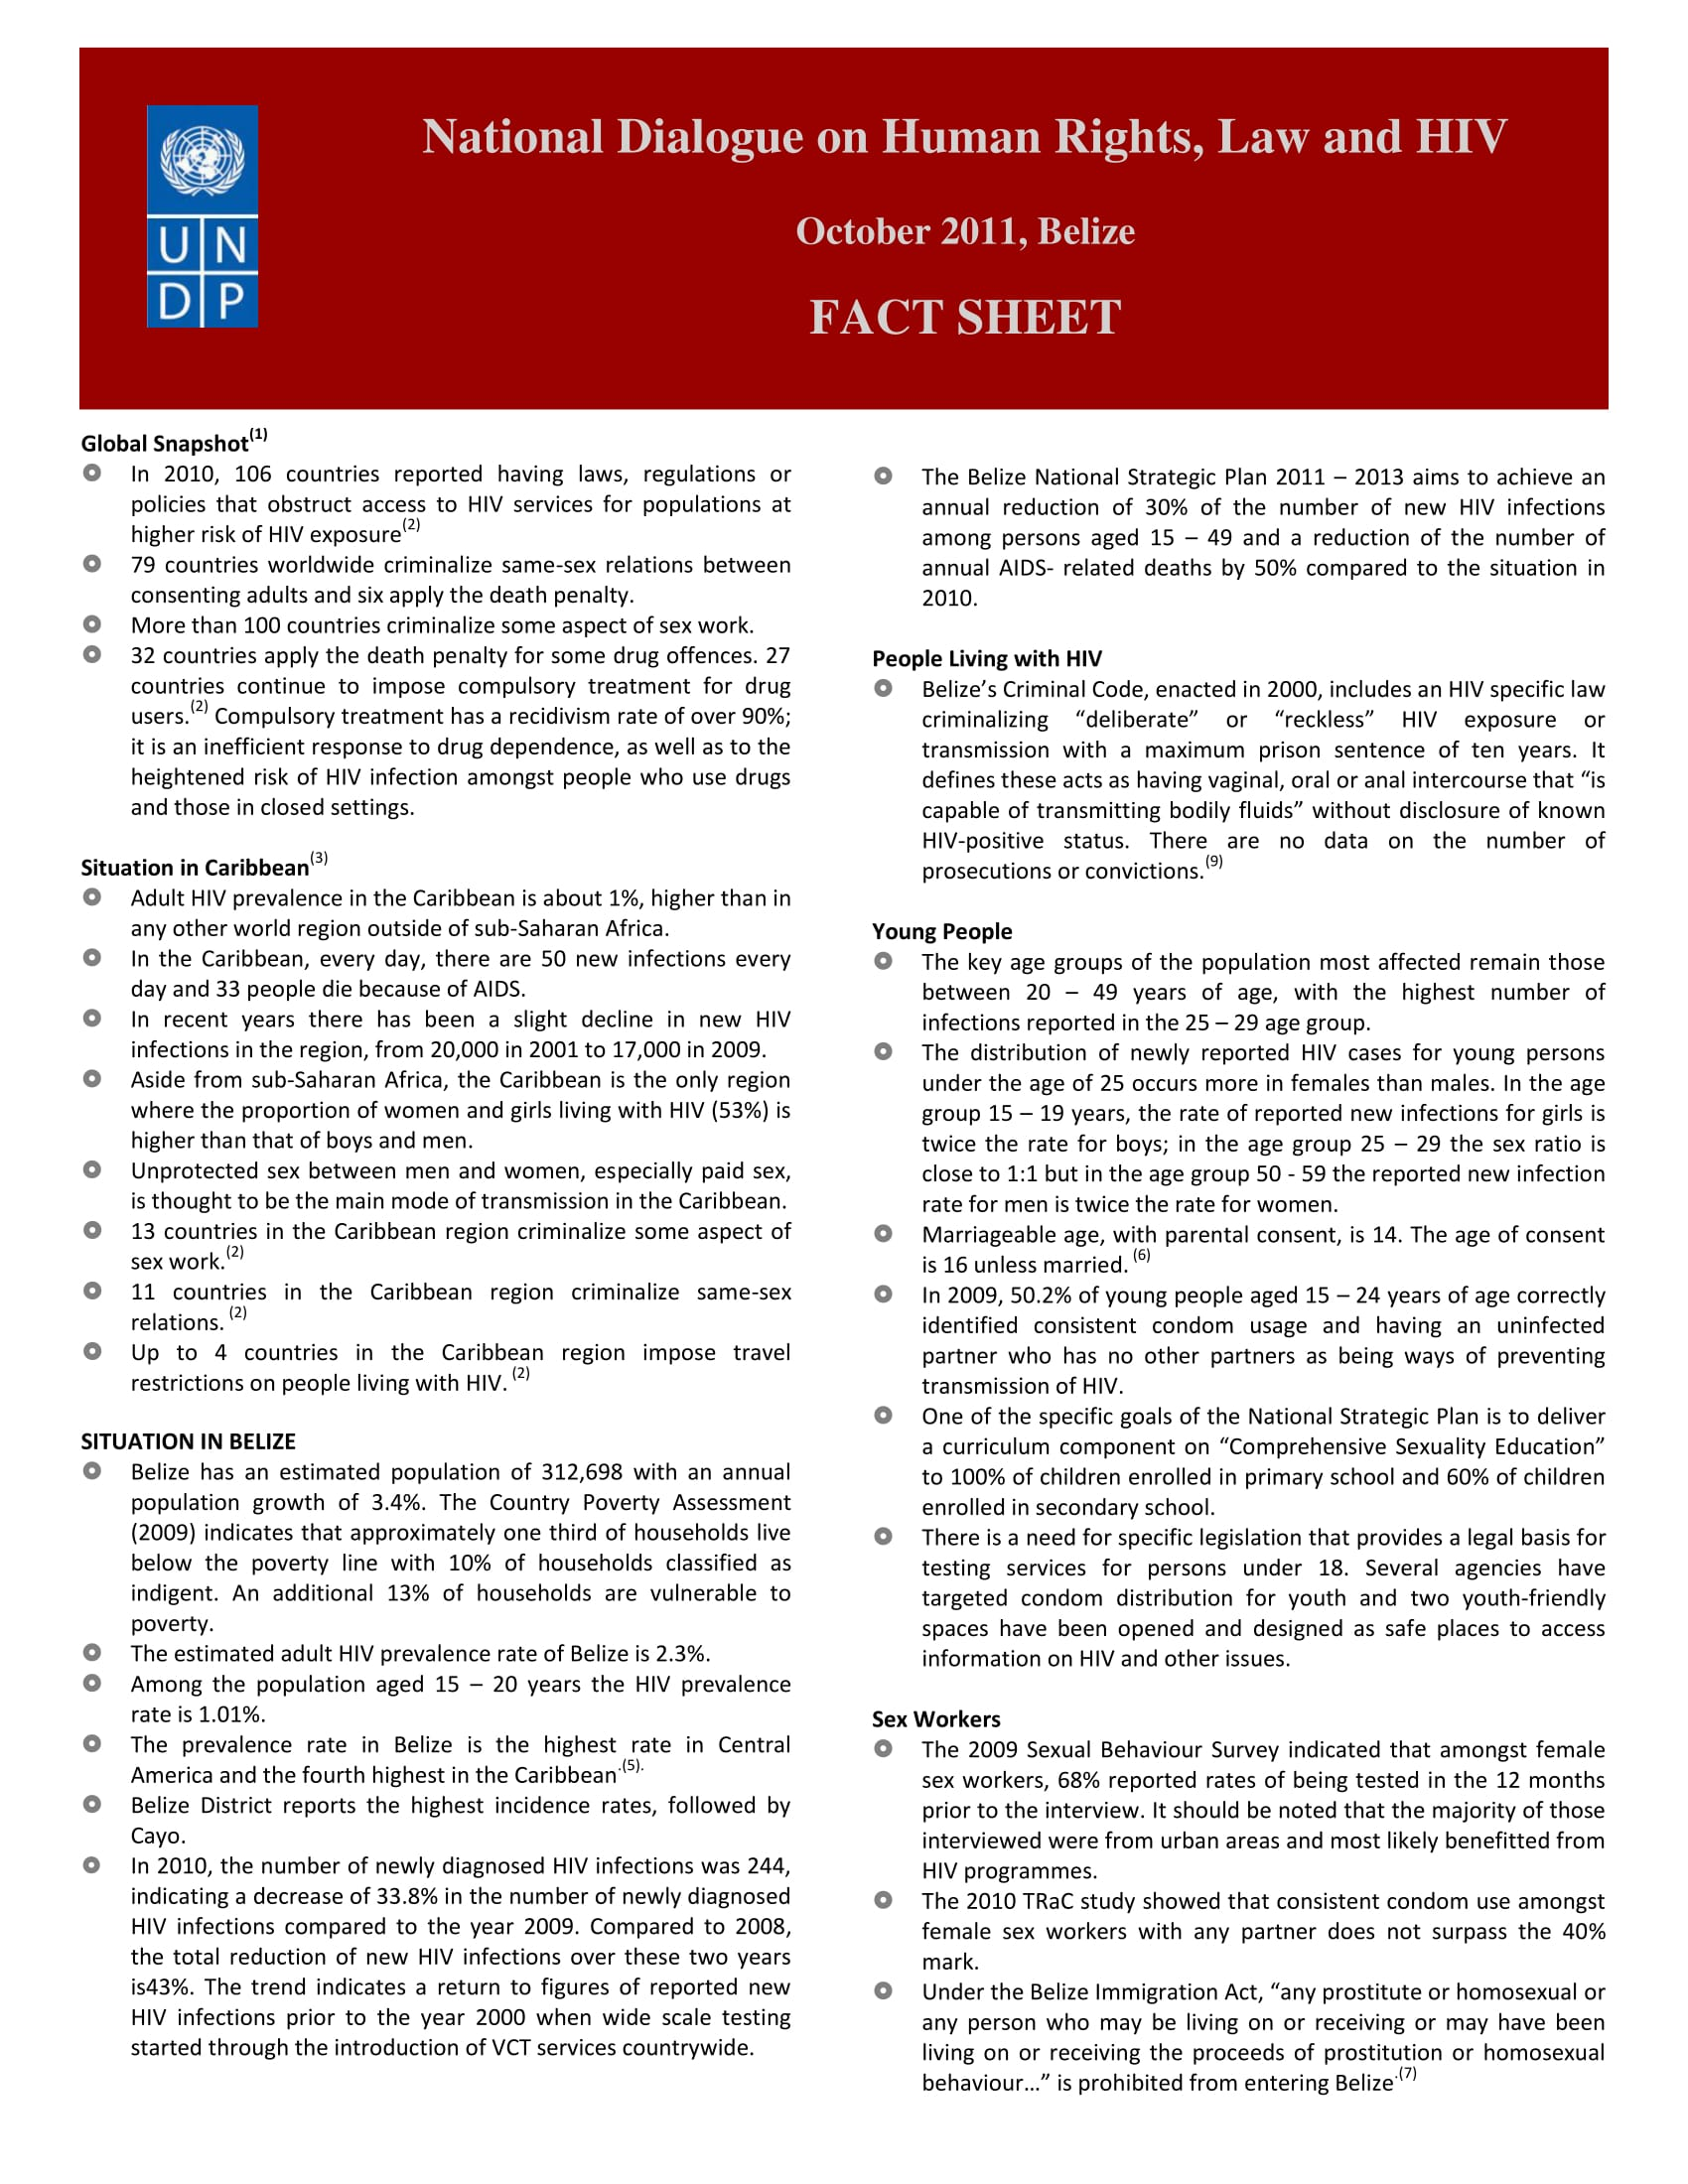 Belize National Dialogue on Human Rights, Law and HIV: Fact Sheet